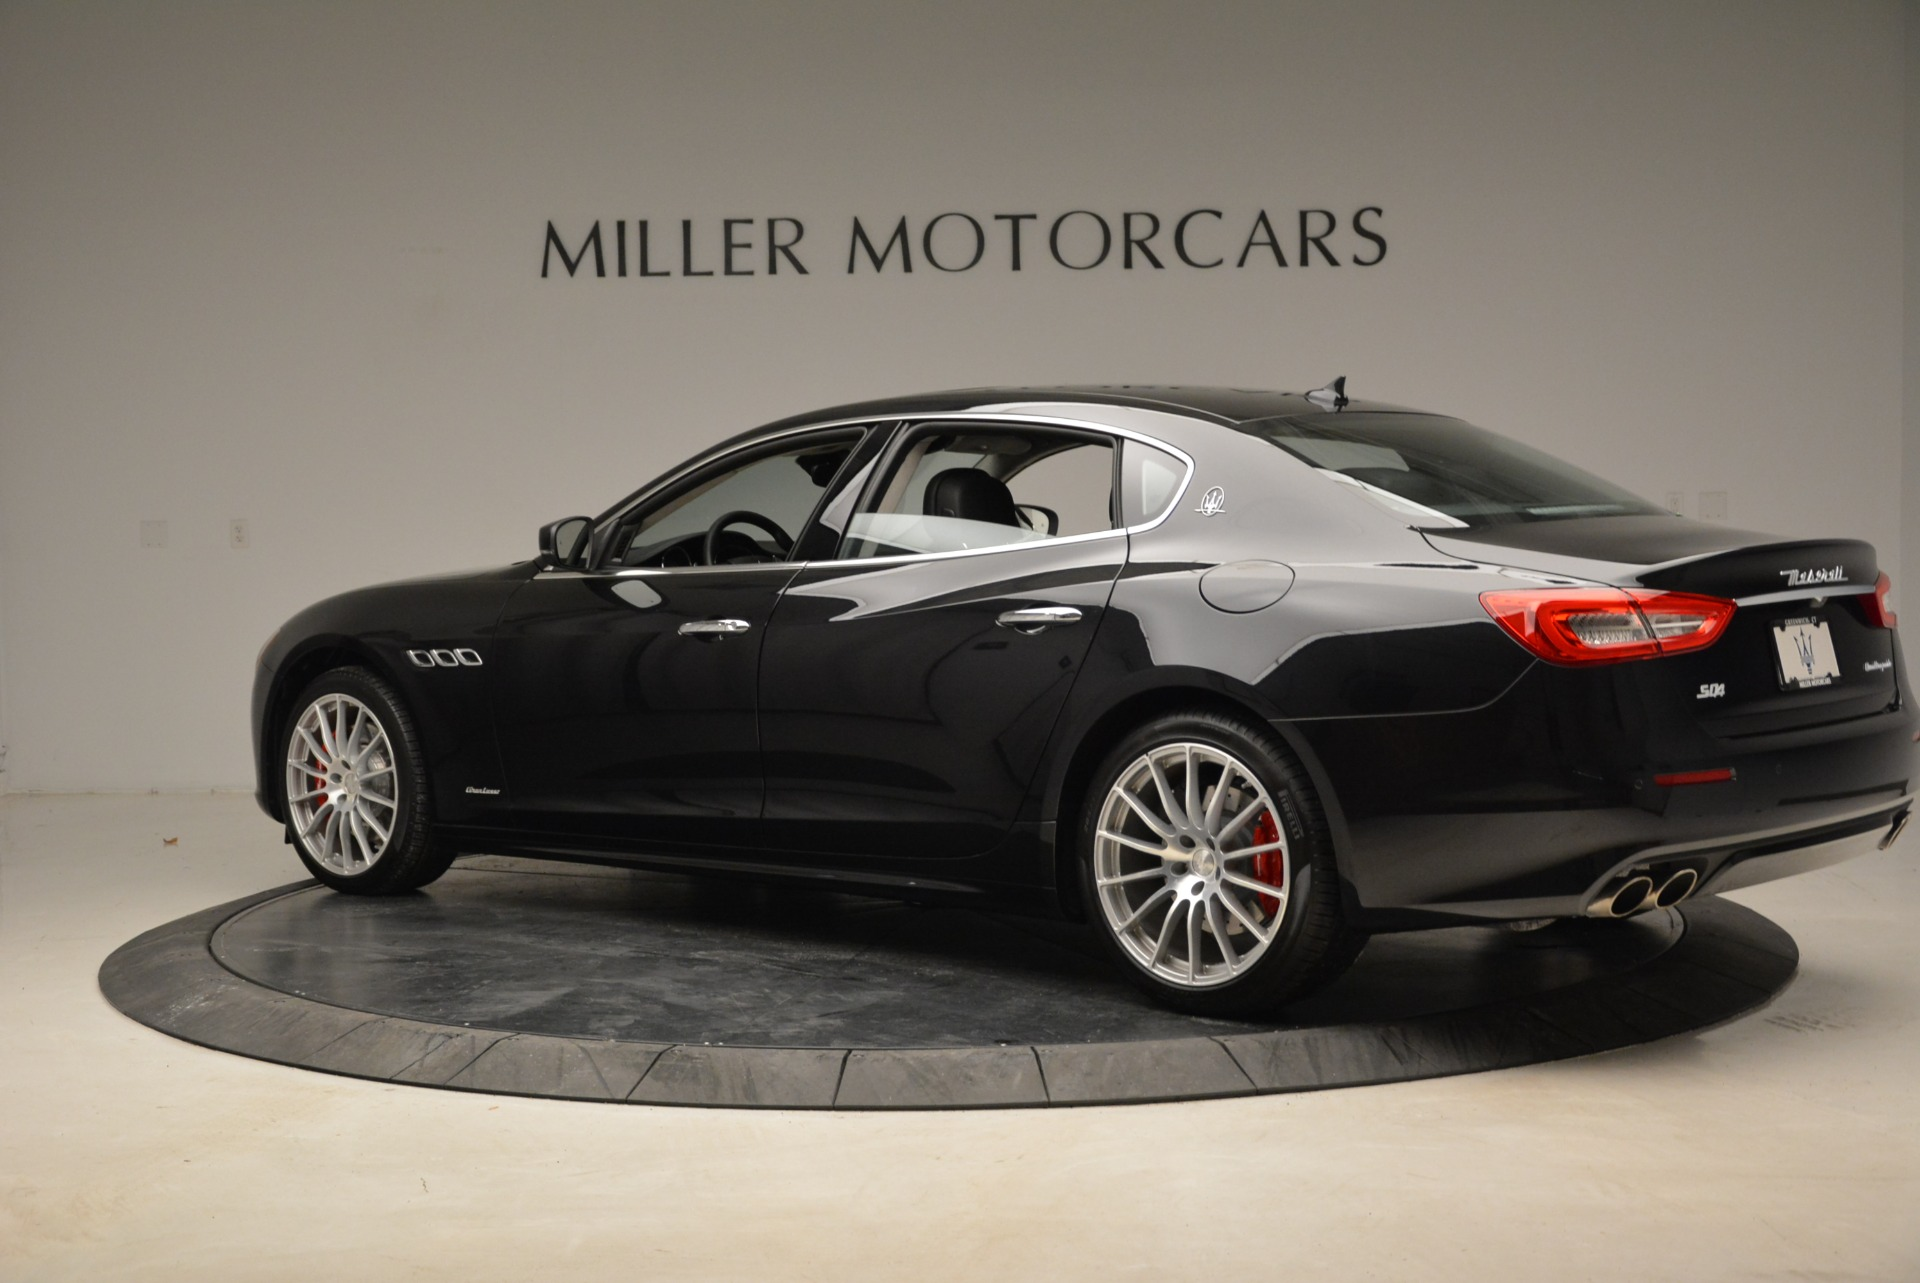 New 2018 Maserati Quattroporte S Q4 GranLusso For Sale In Greenwich, CT 1705_p4